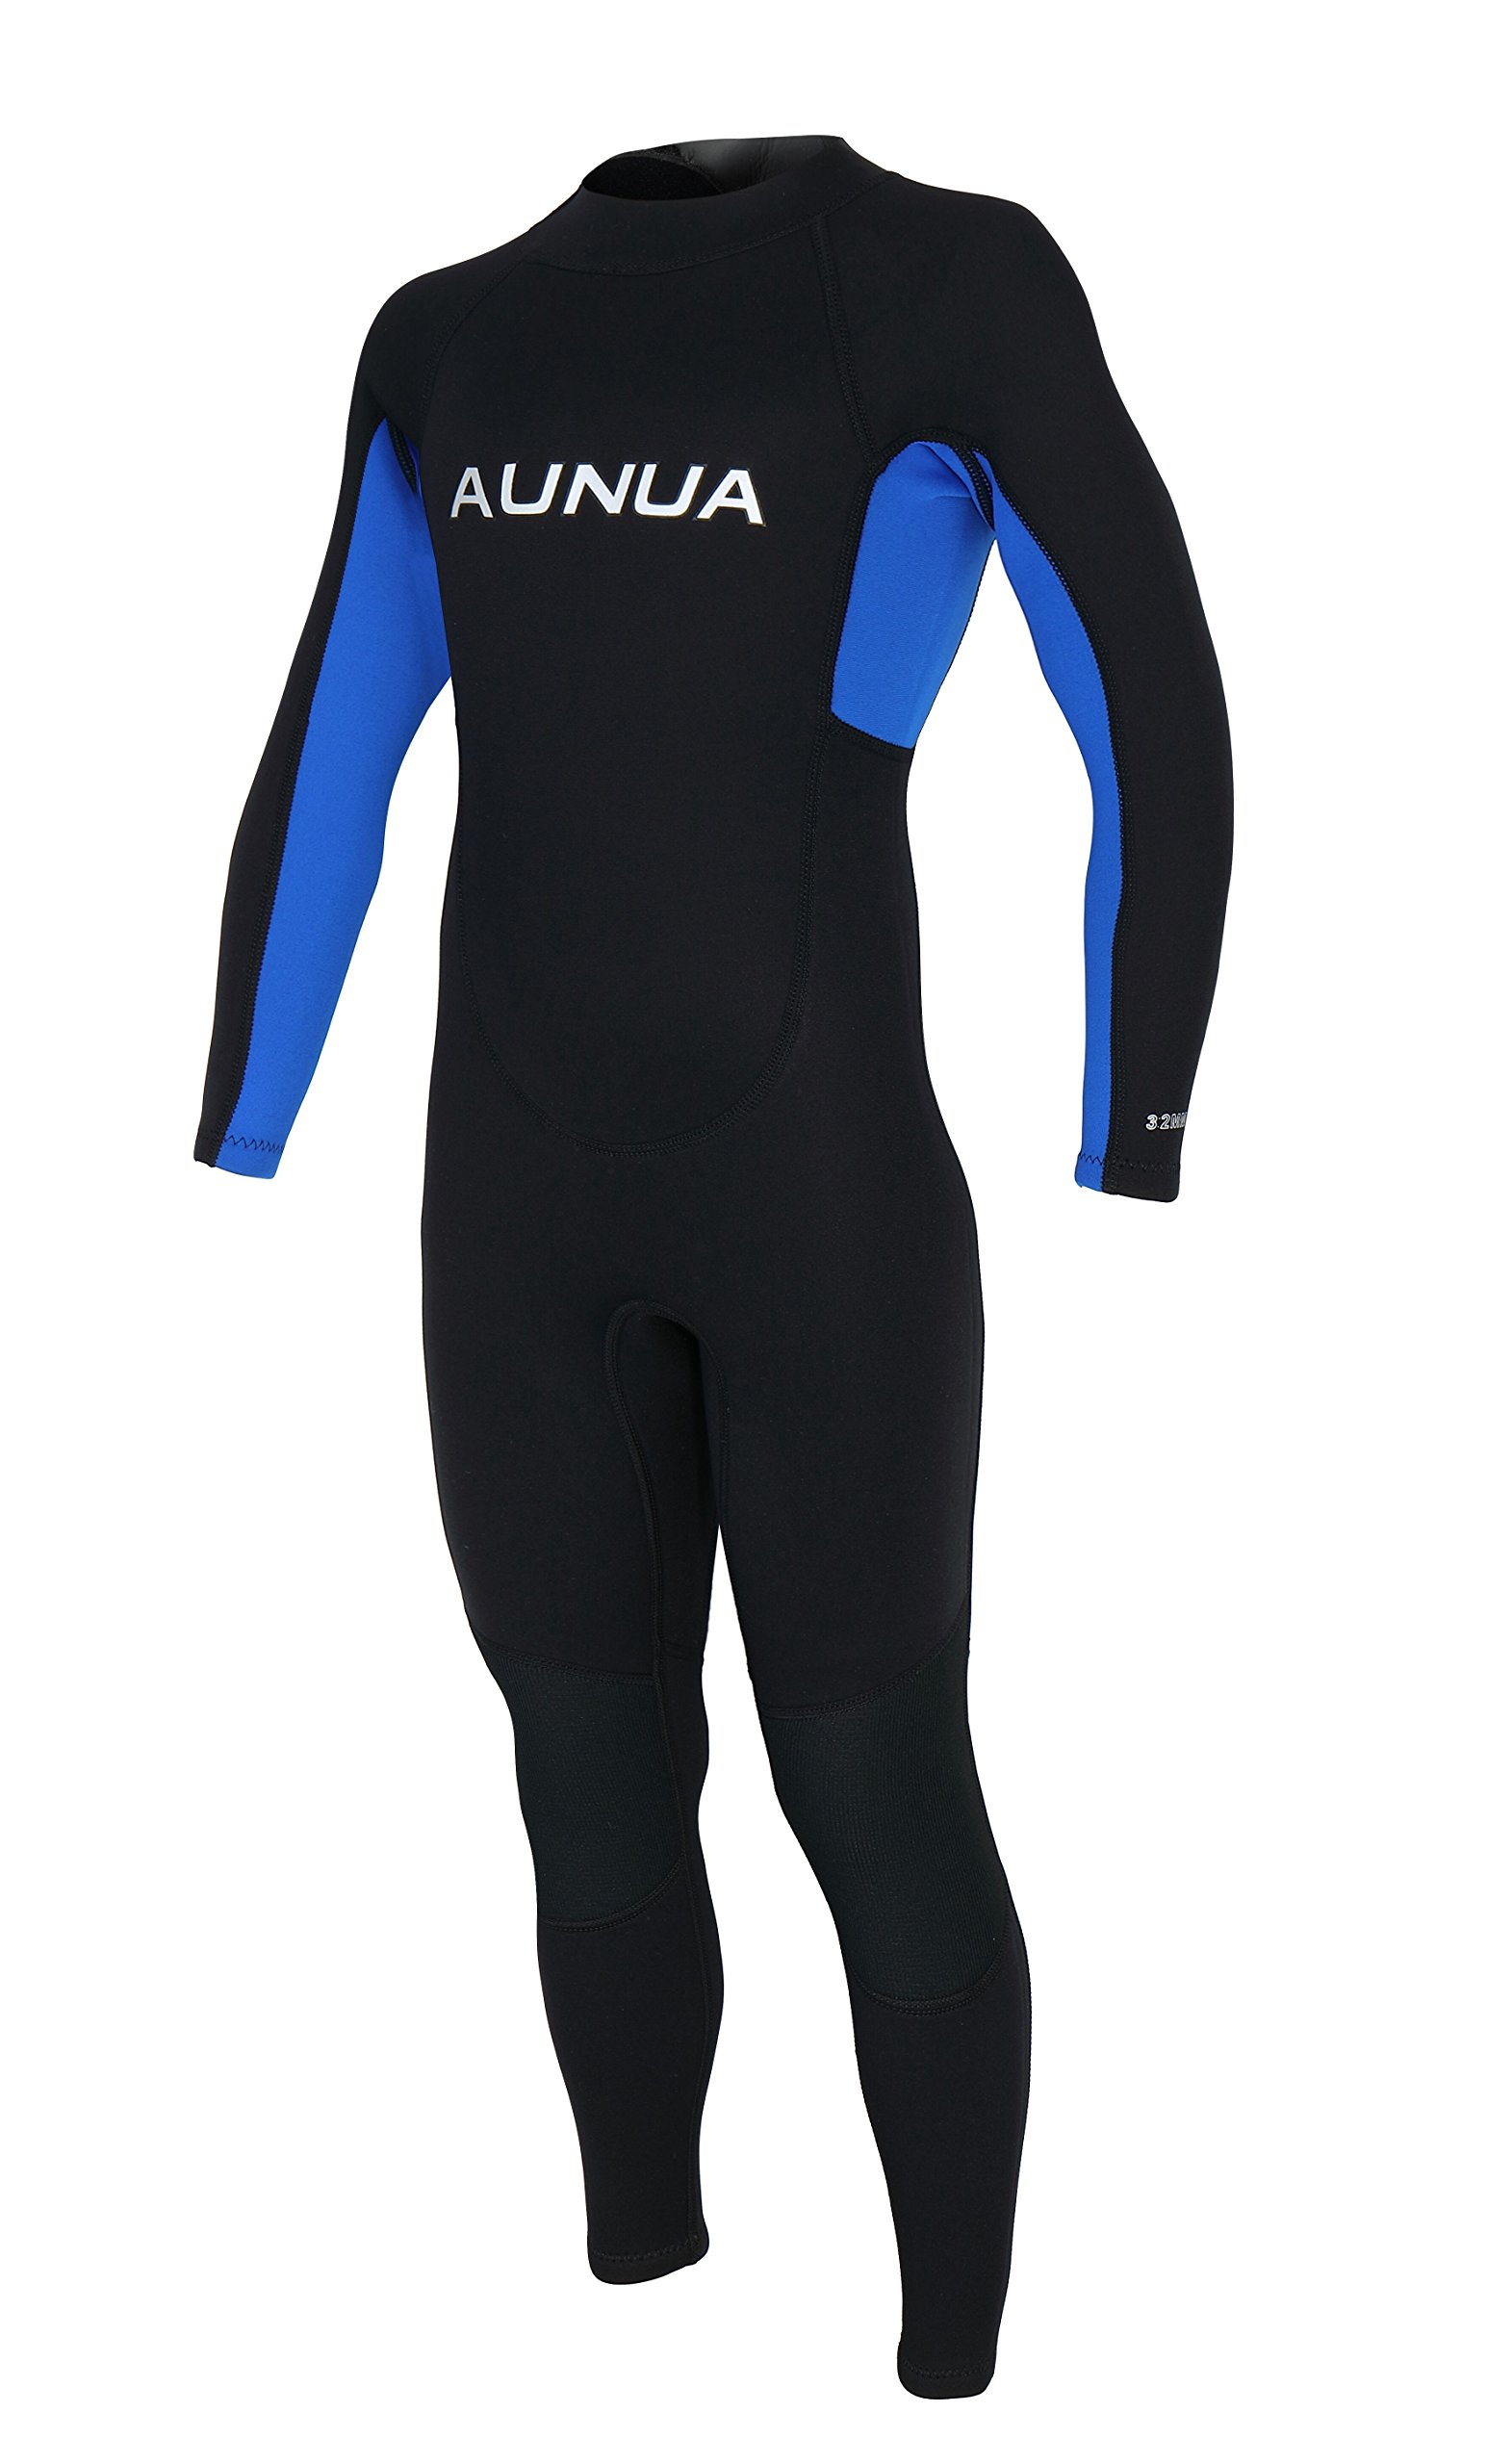 Aunua Youth 3/2mm Neoprene Wetsuits for Kids Full Wetsuit Swimming Suit Keep Warm(7031 BlackBlue 8) by Aunua